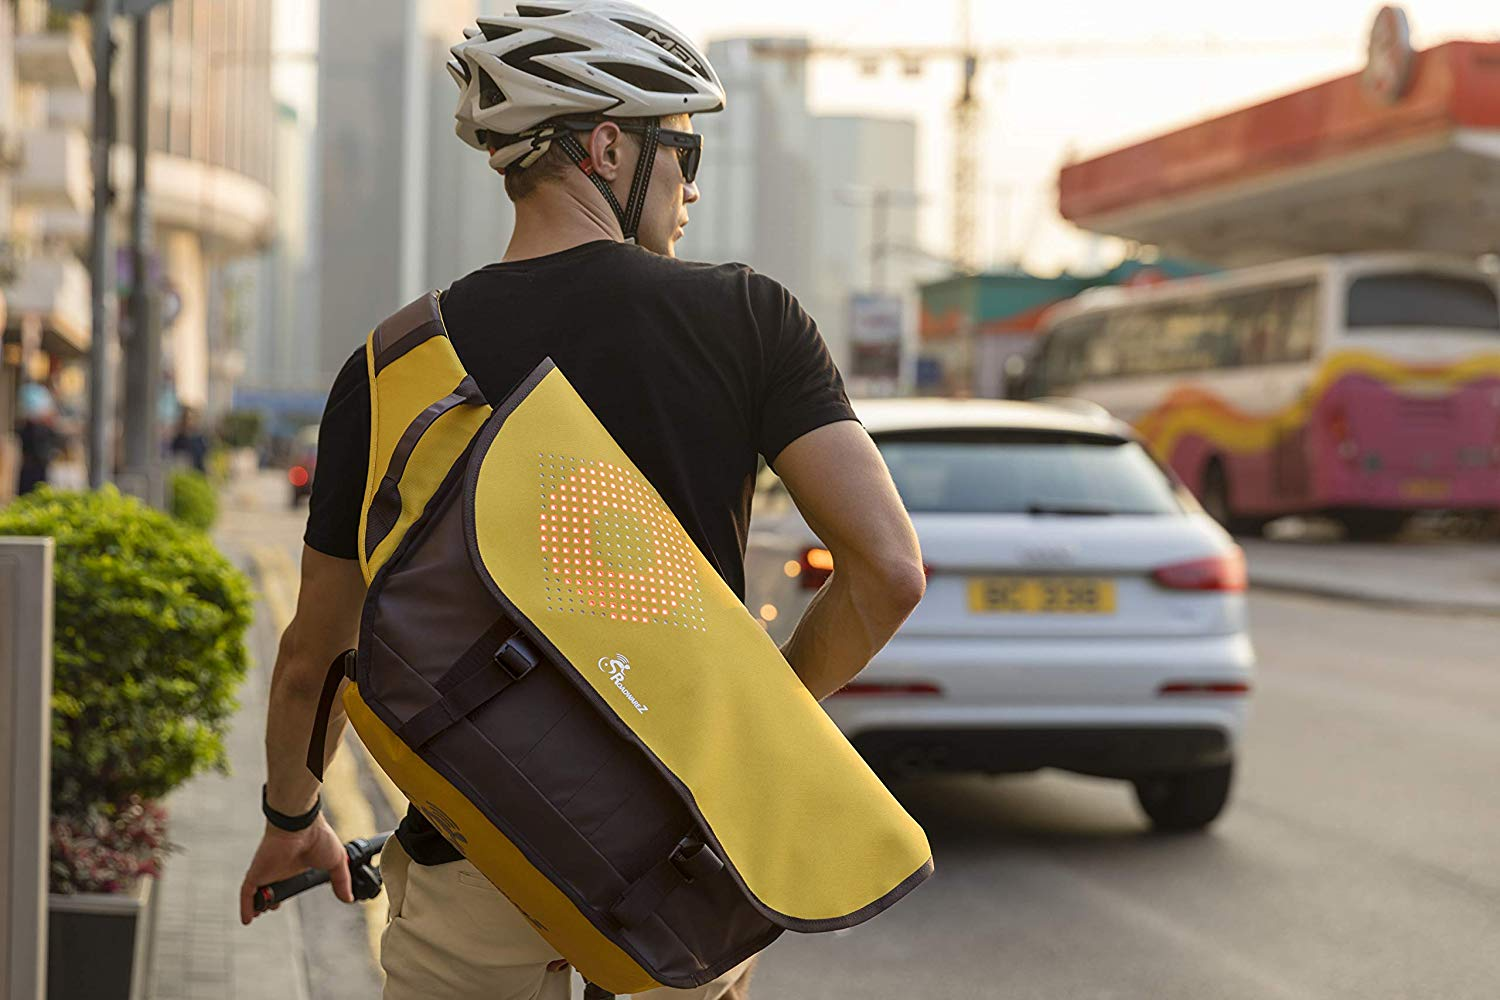 Roadwarez Cruiser -The Only Smart Cycling Backpack Bag